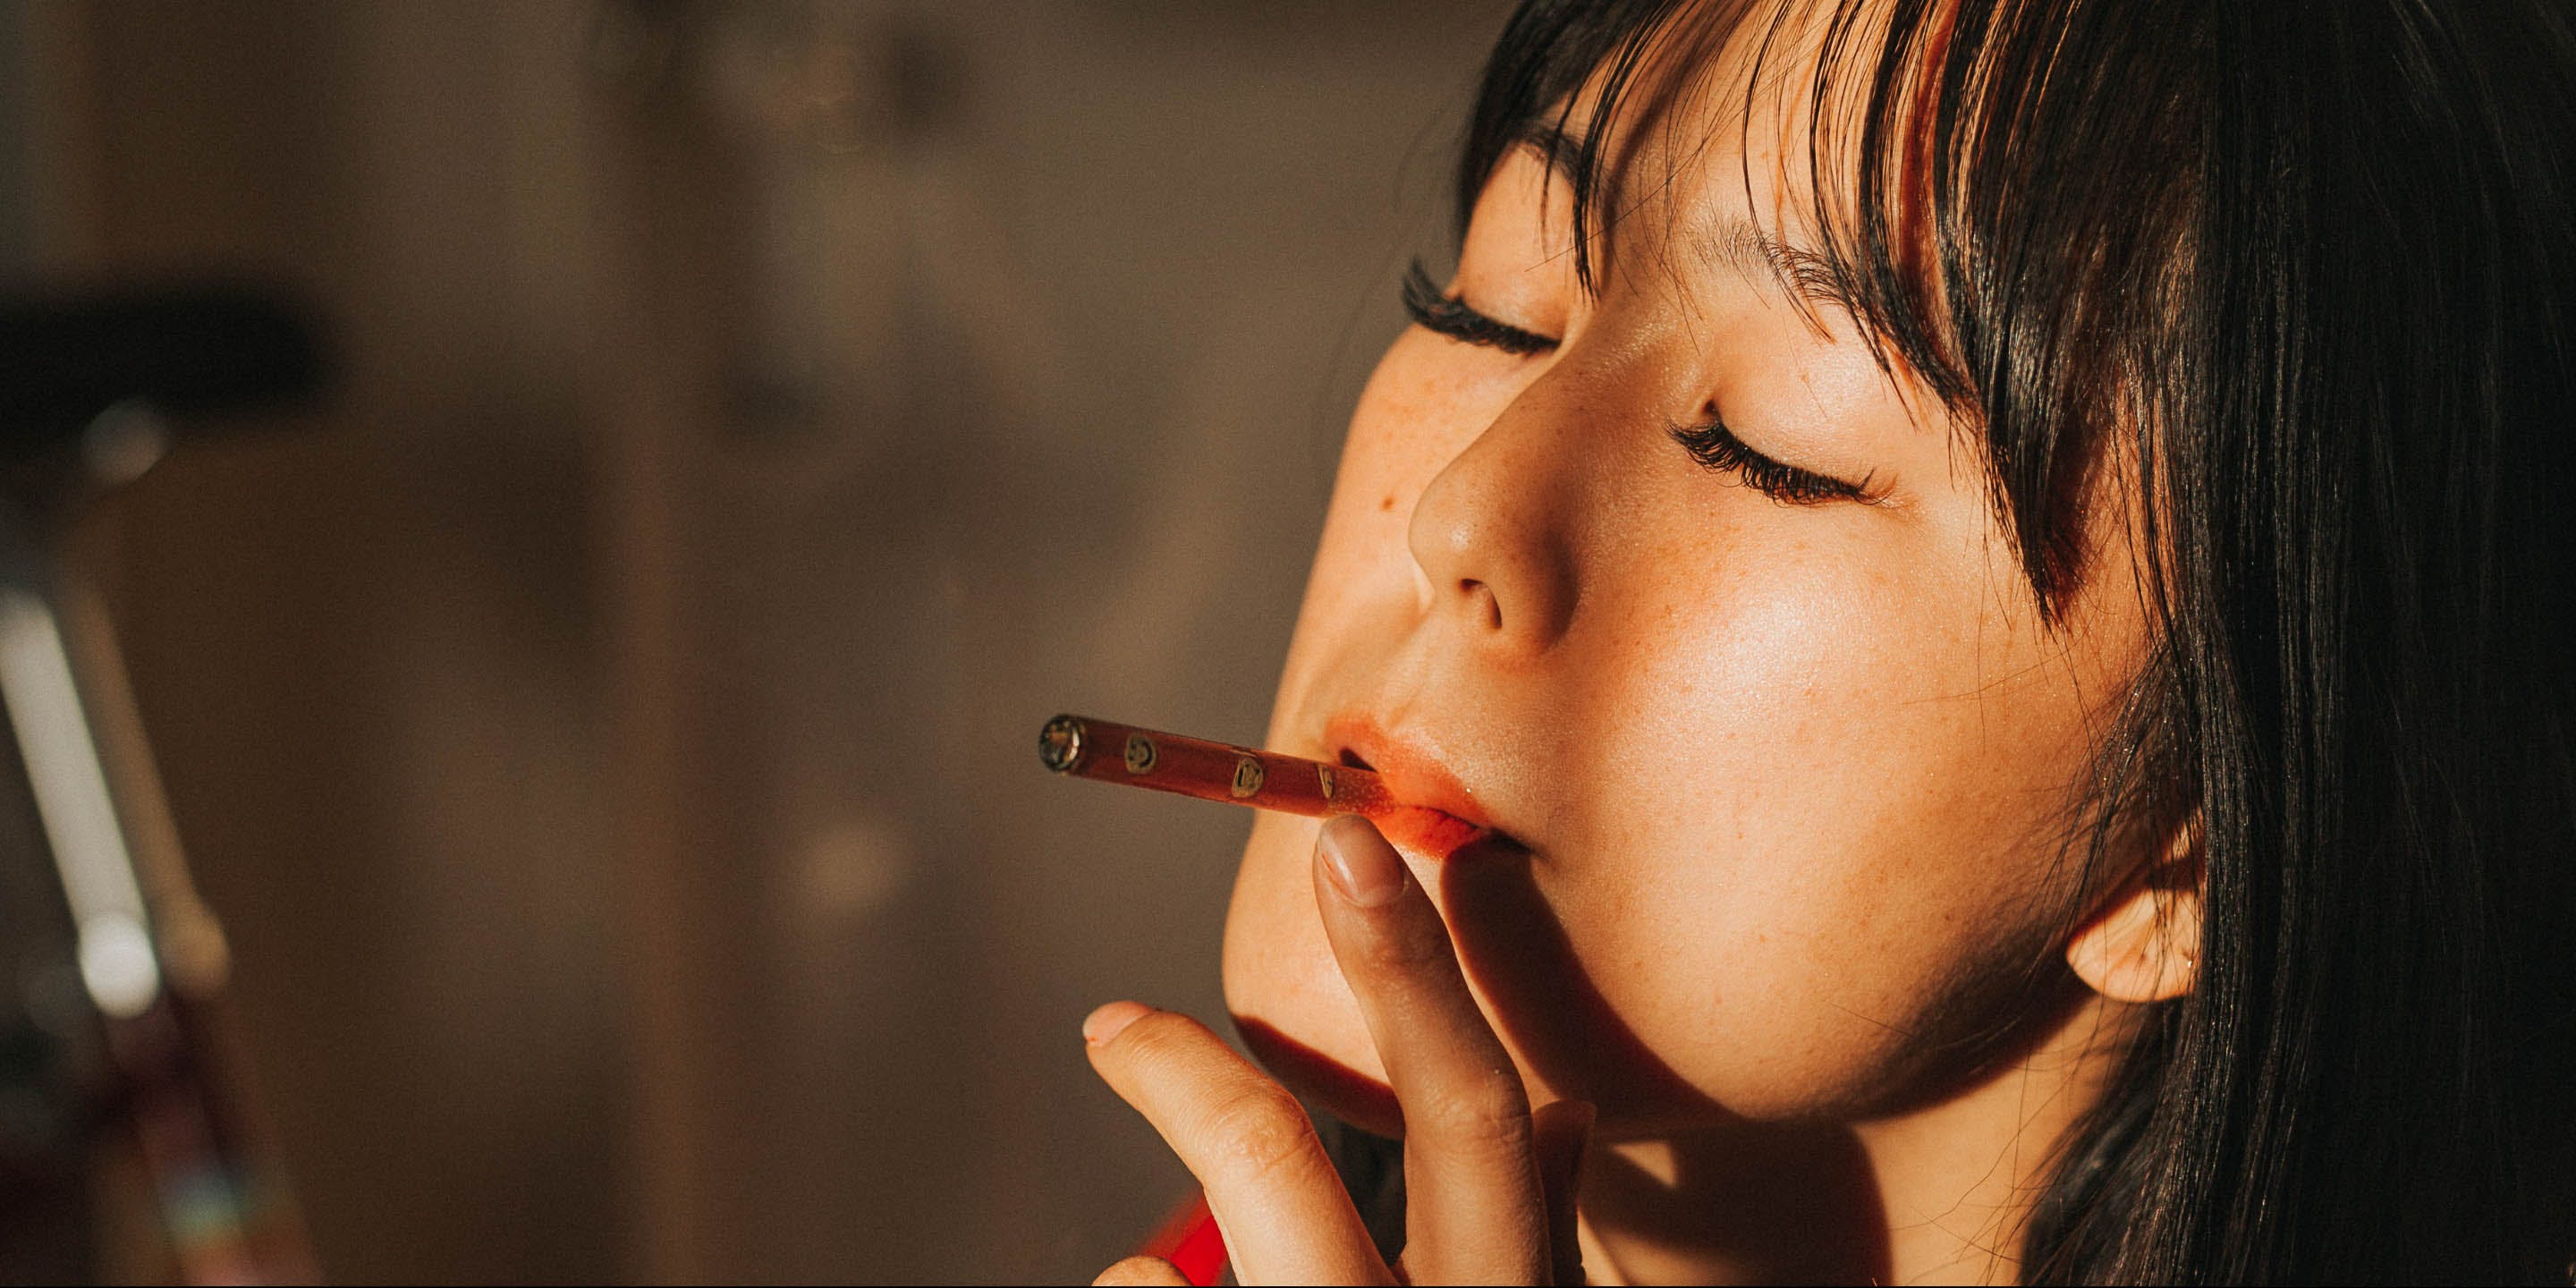 A woman smokes with her eyes closed. A woman smokes while sitting down. A new study cites that problematic behavior was not shown to increase in tandem with legalized cannabis laws.